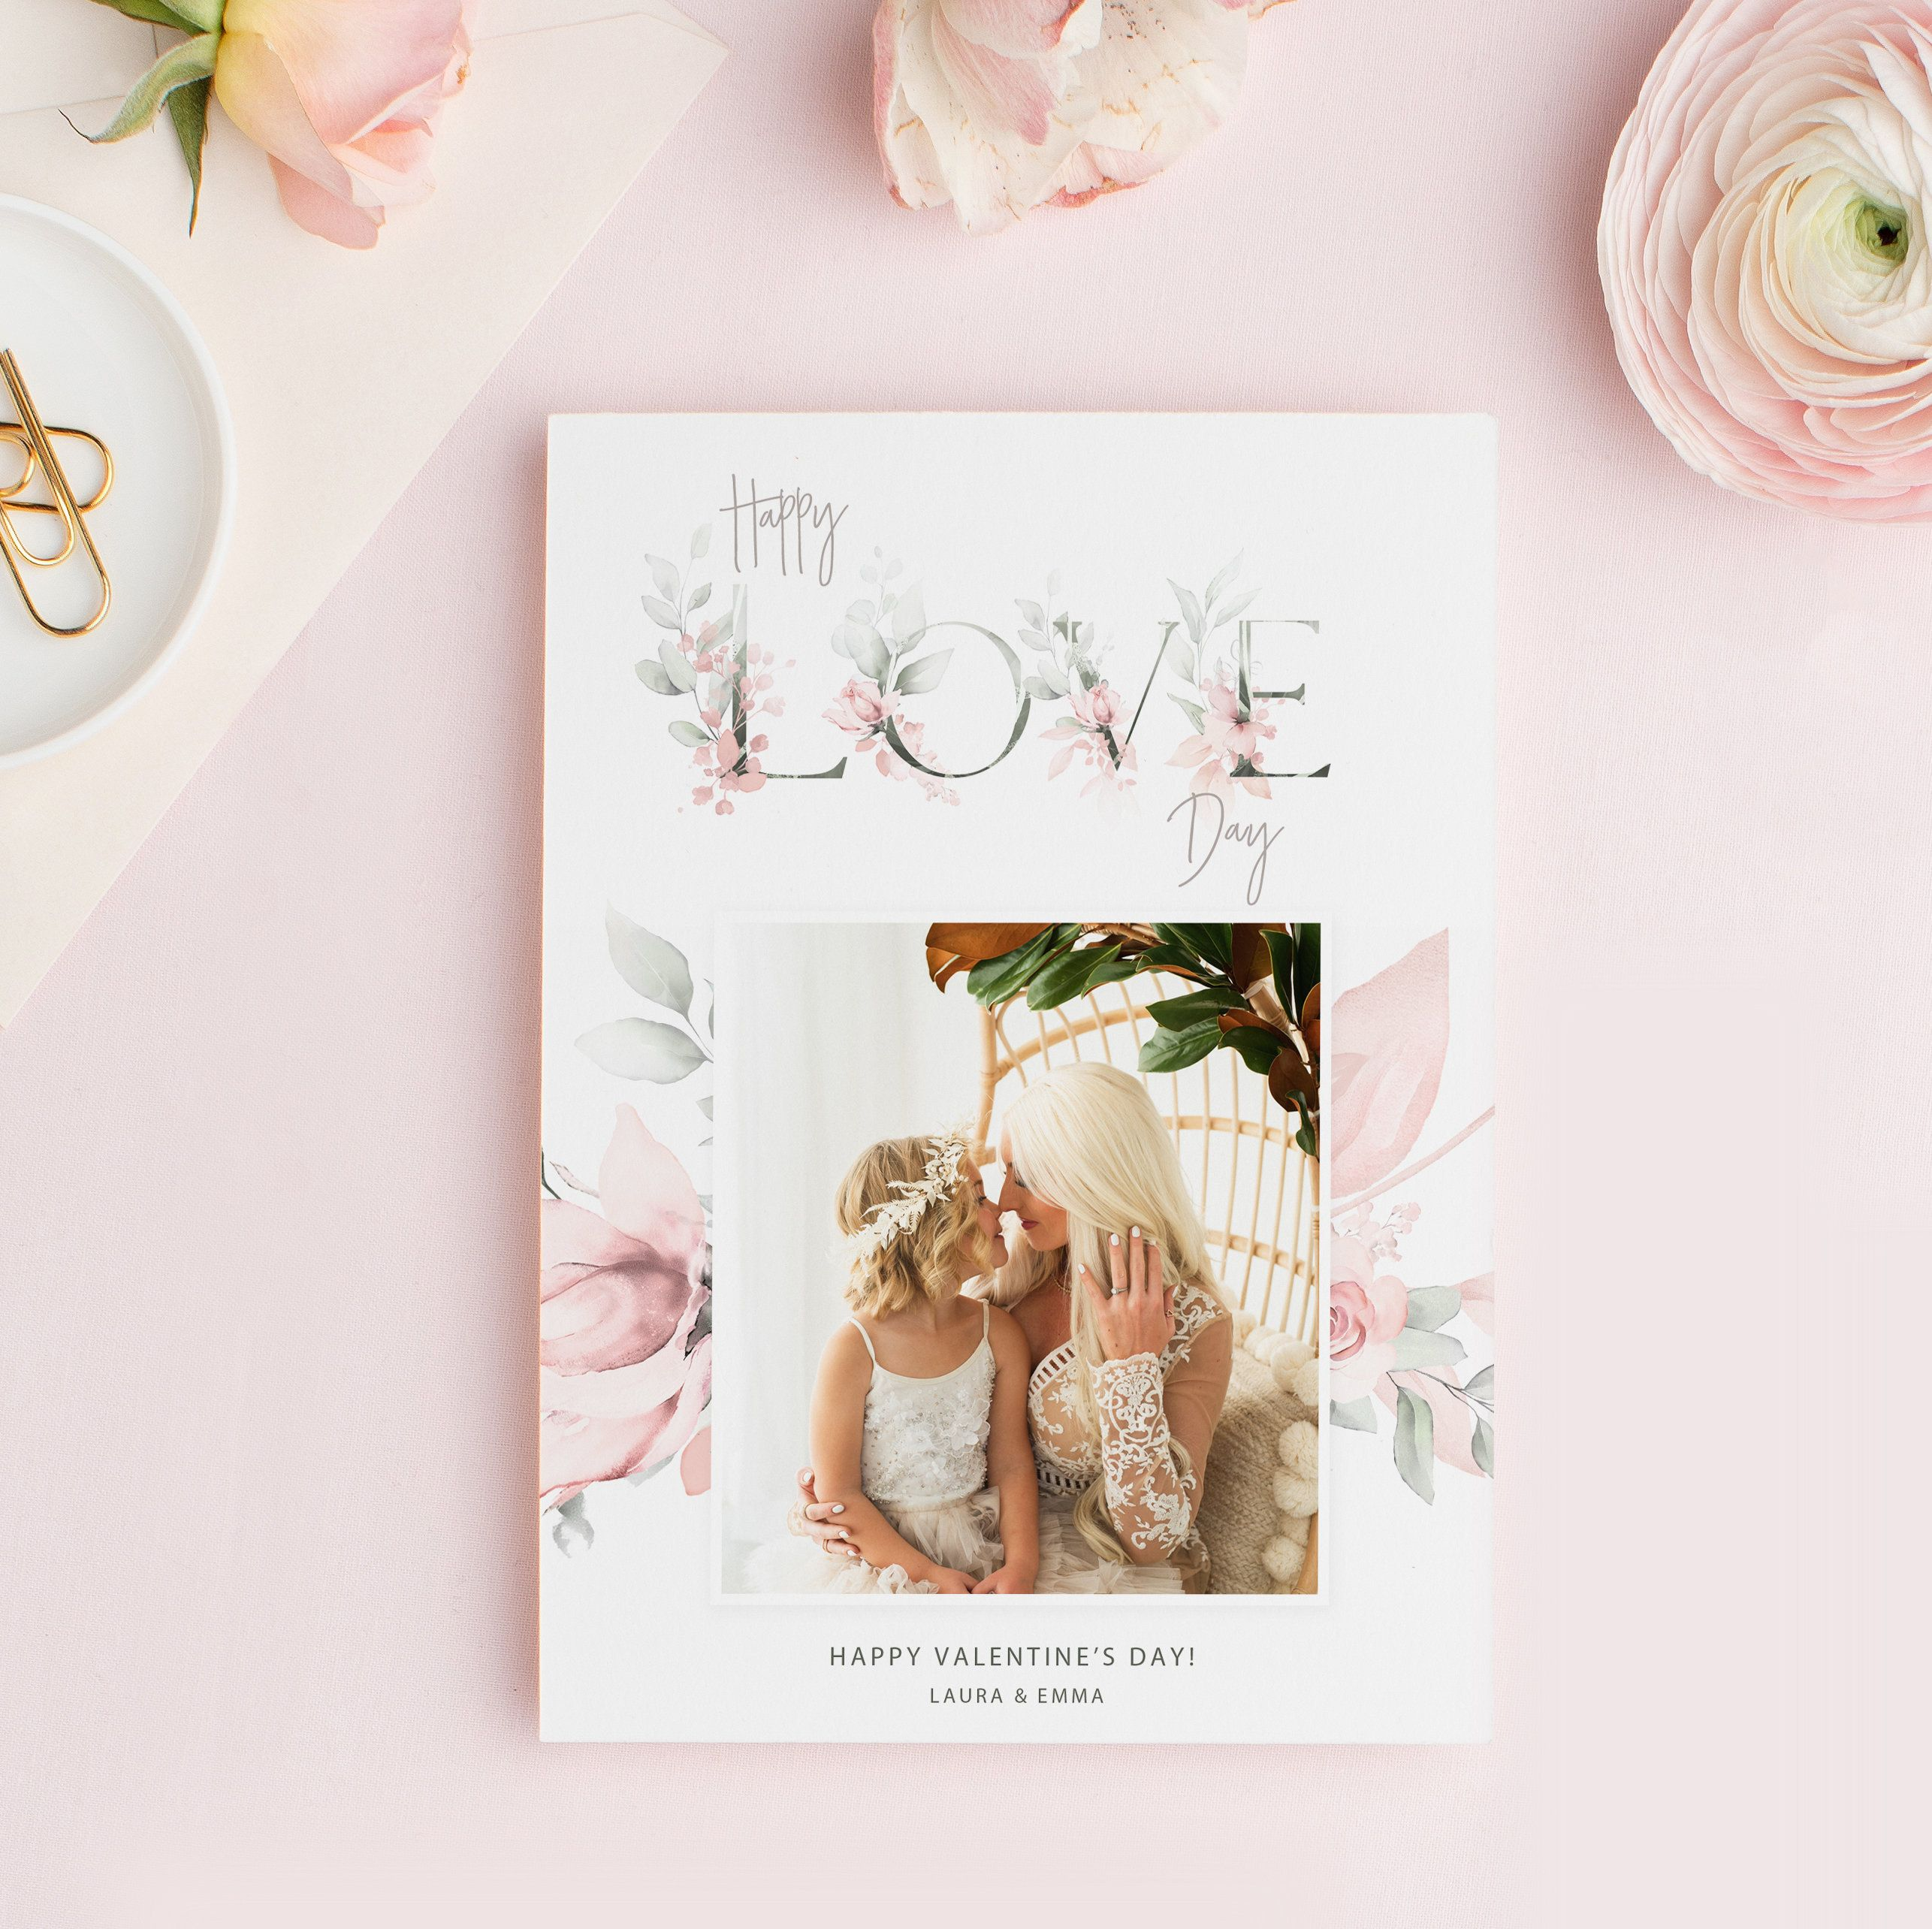 Happy Love Day Card Template Valentine S Day Photo Card Etsy Happy Love Day Valentine Photo Cards Valentines Day Photos